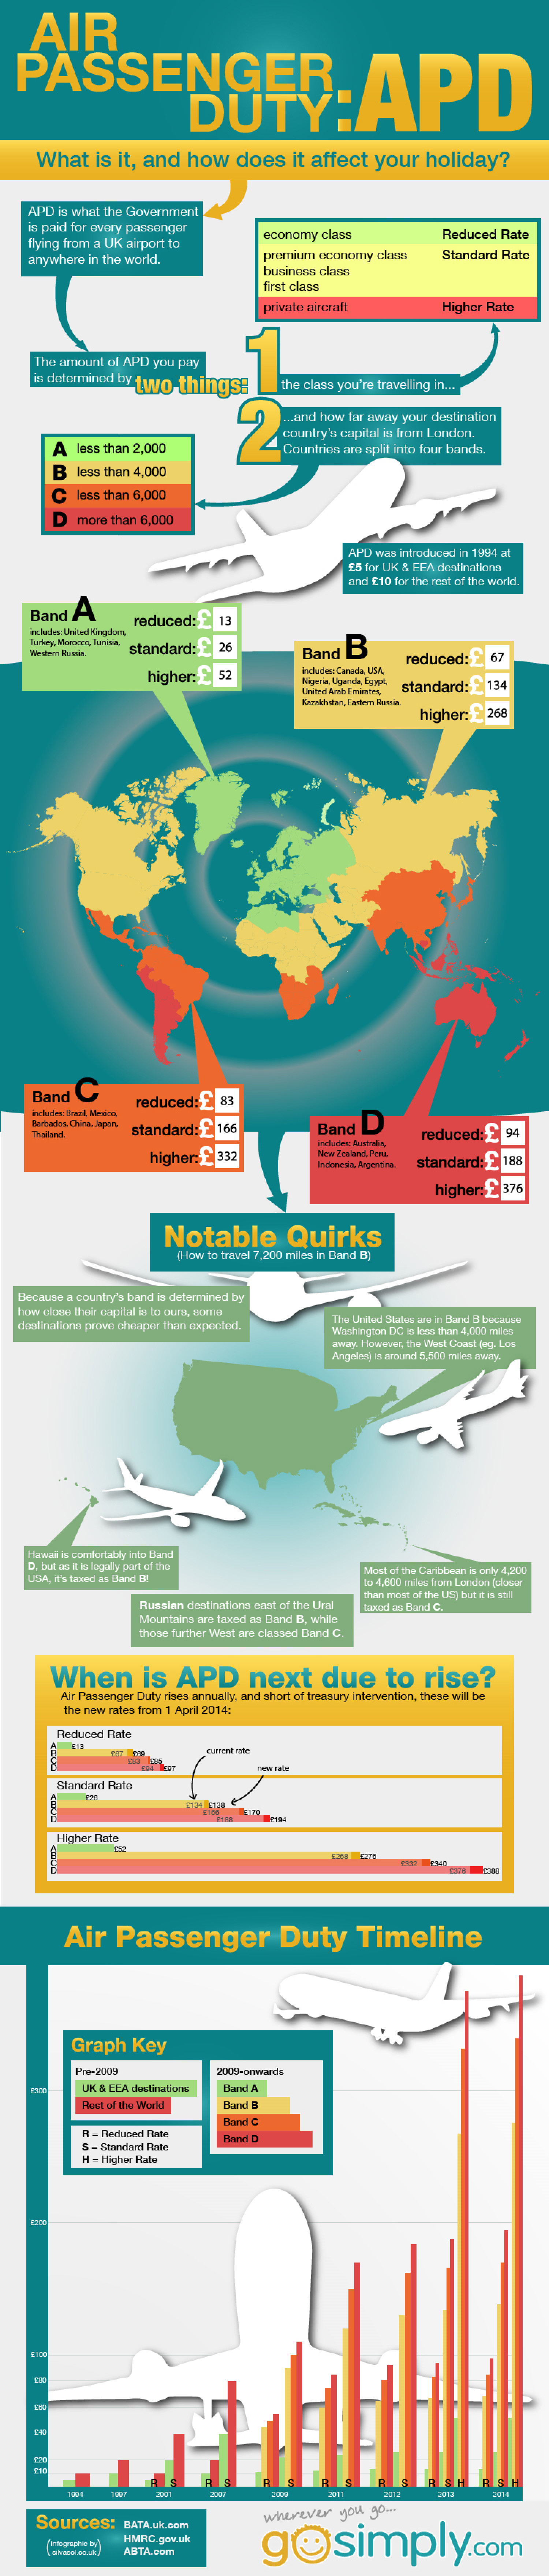 Air Passenger Duty – What is it, and How Does it Affect Your Holiday? Infographic